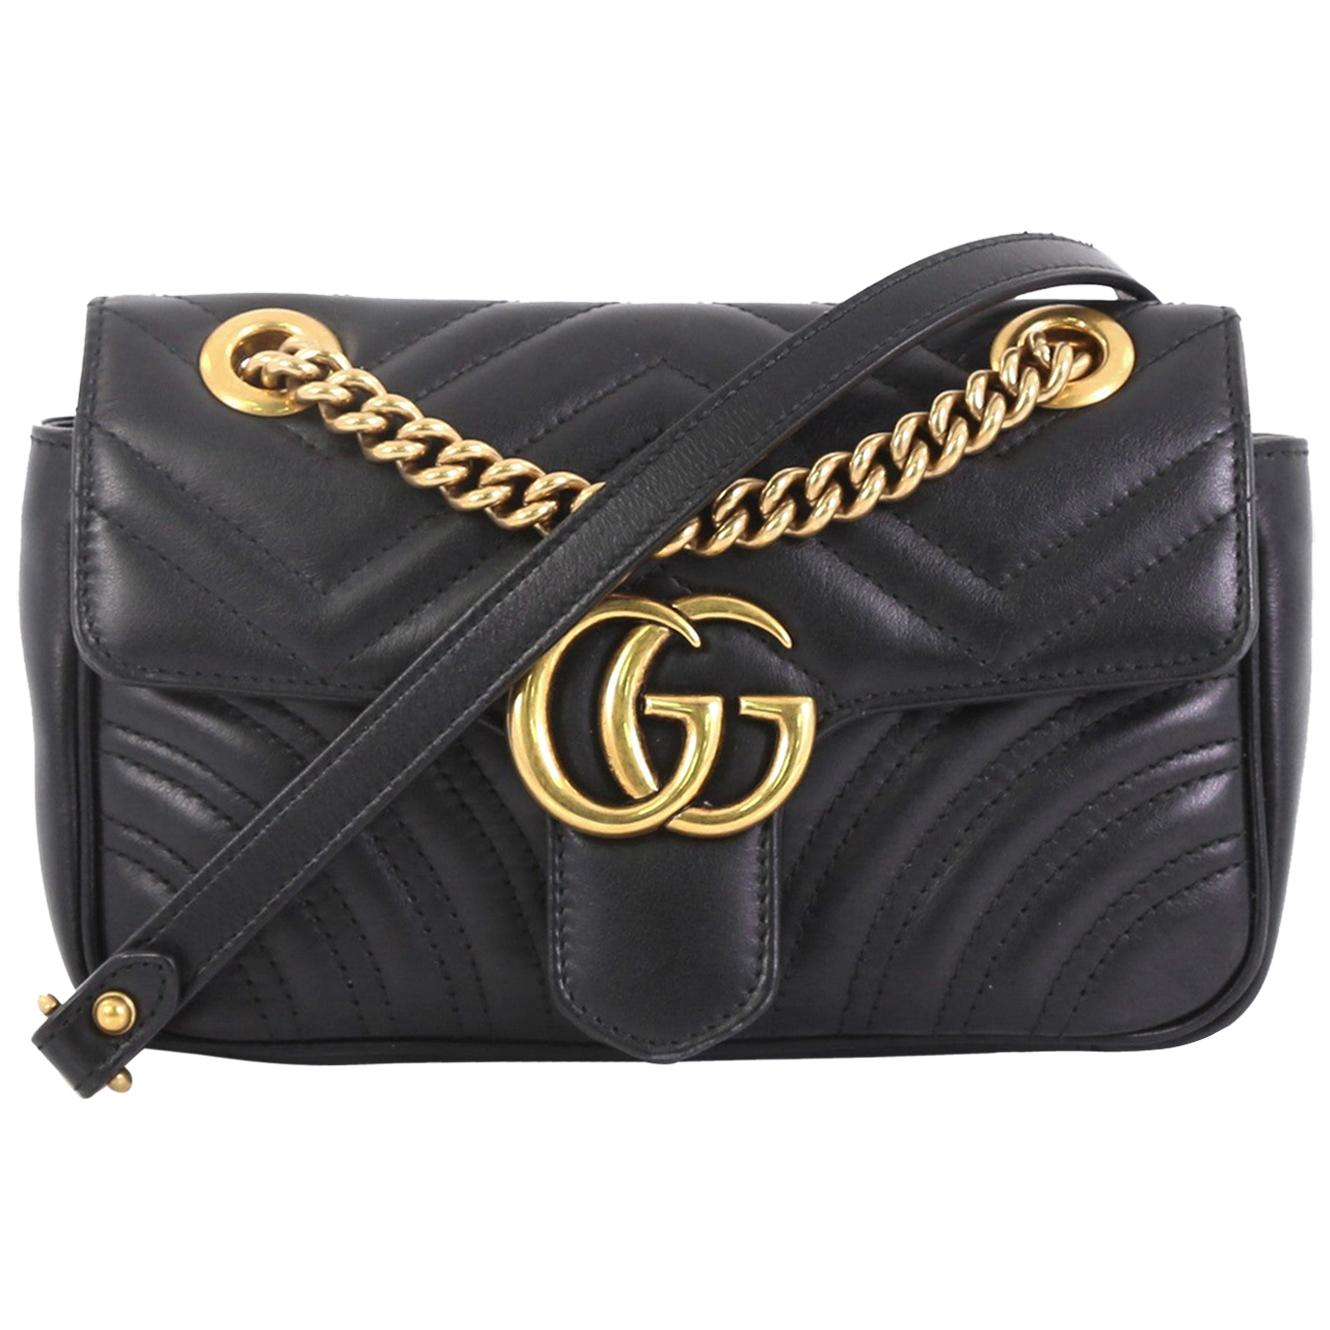 19aeff510 Vintage Gucci Handbags and Purses - 2,355 For Sale at 1stdibs